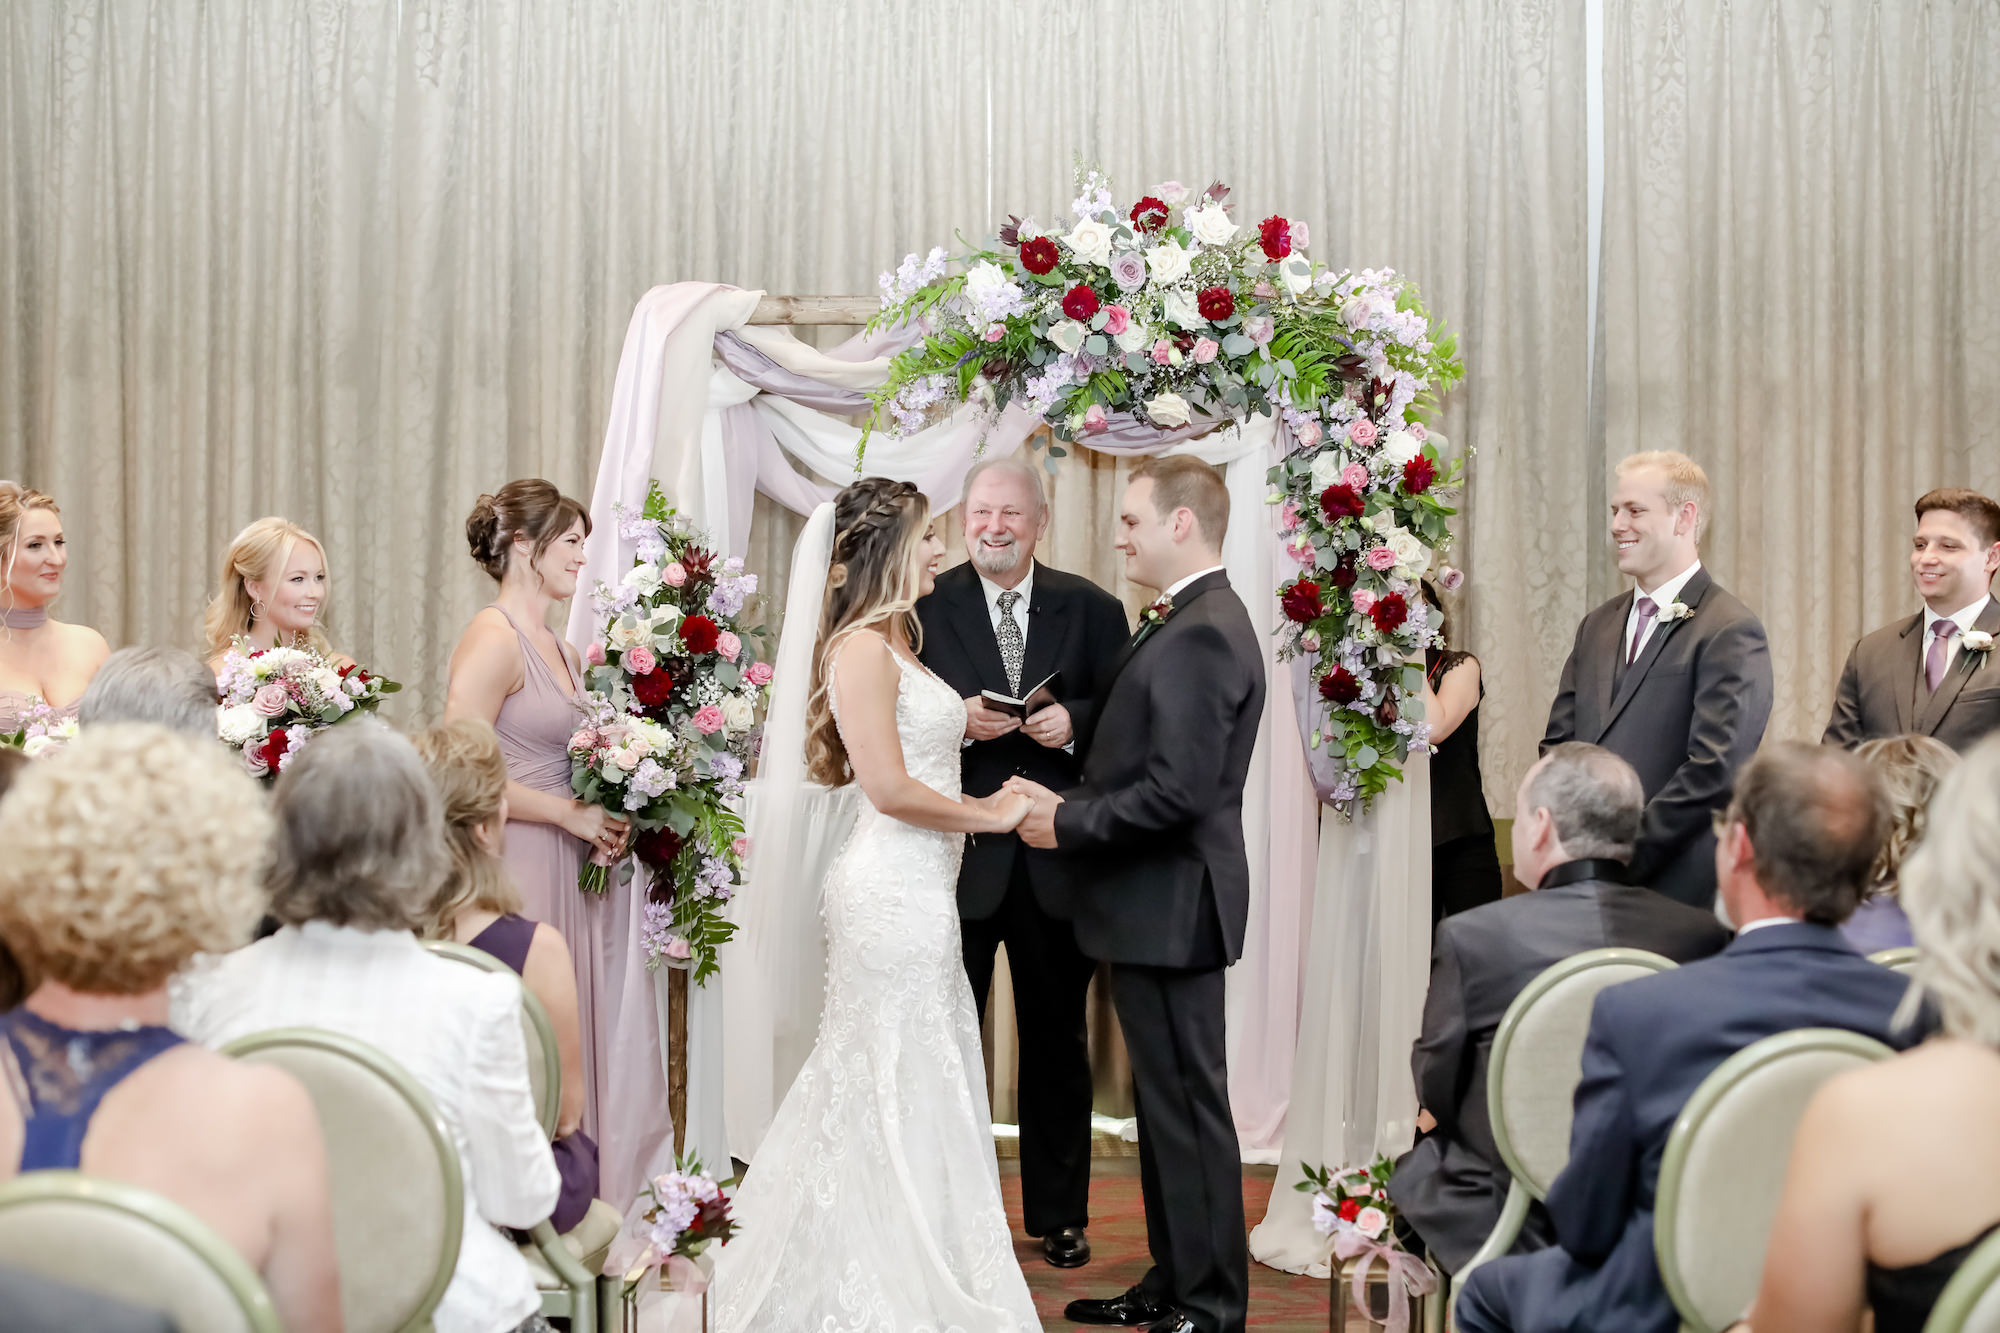 Tampa Bay Bride and Groom Exchange Vows in Ballroom Ceremony, Under Romantic Floral Wedding Arch with Red, White and Mauve Roses, Purple Flowers with Greenery, Ivory Draping   Downtown St. Pete Wedding Planner Blue Skies Weddings and Events   Florida Wedding Photographer Lifelong Photography Studio